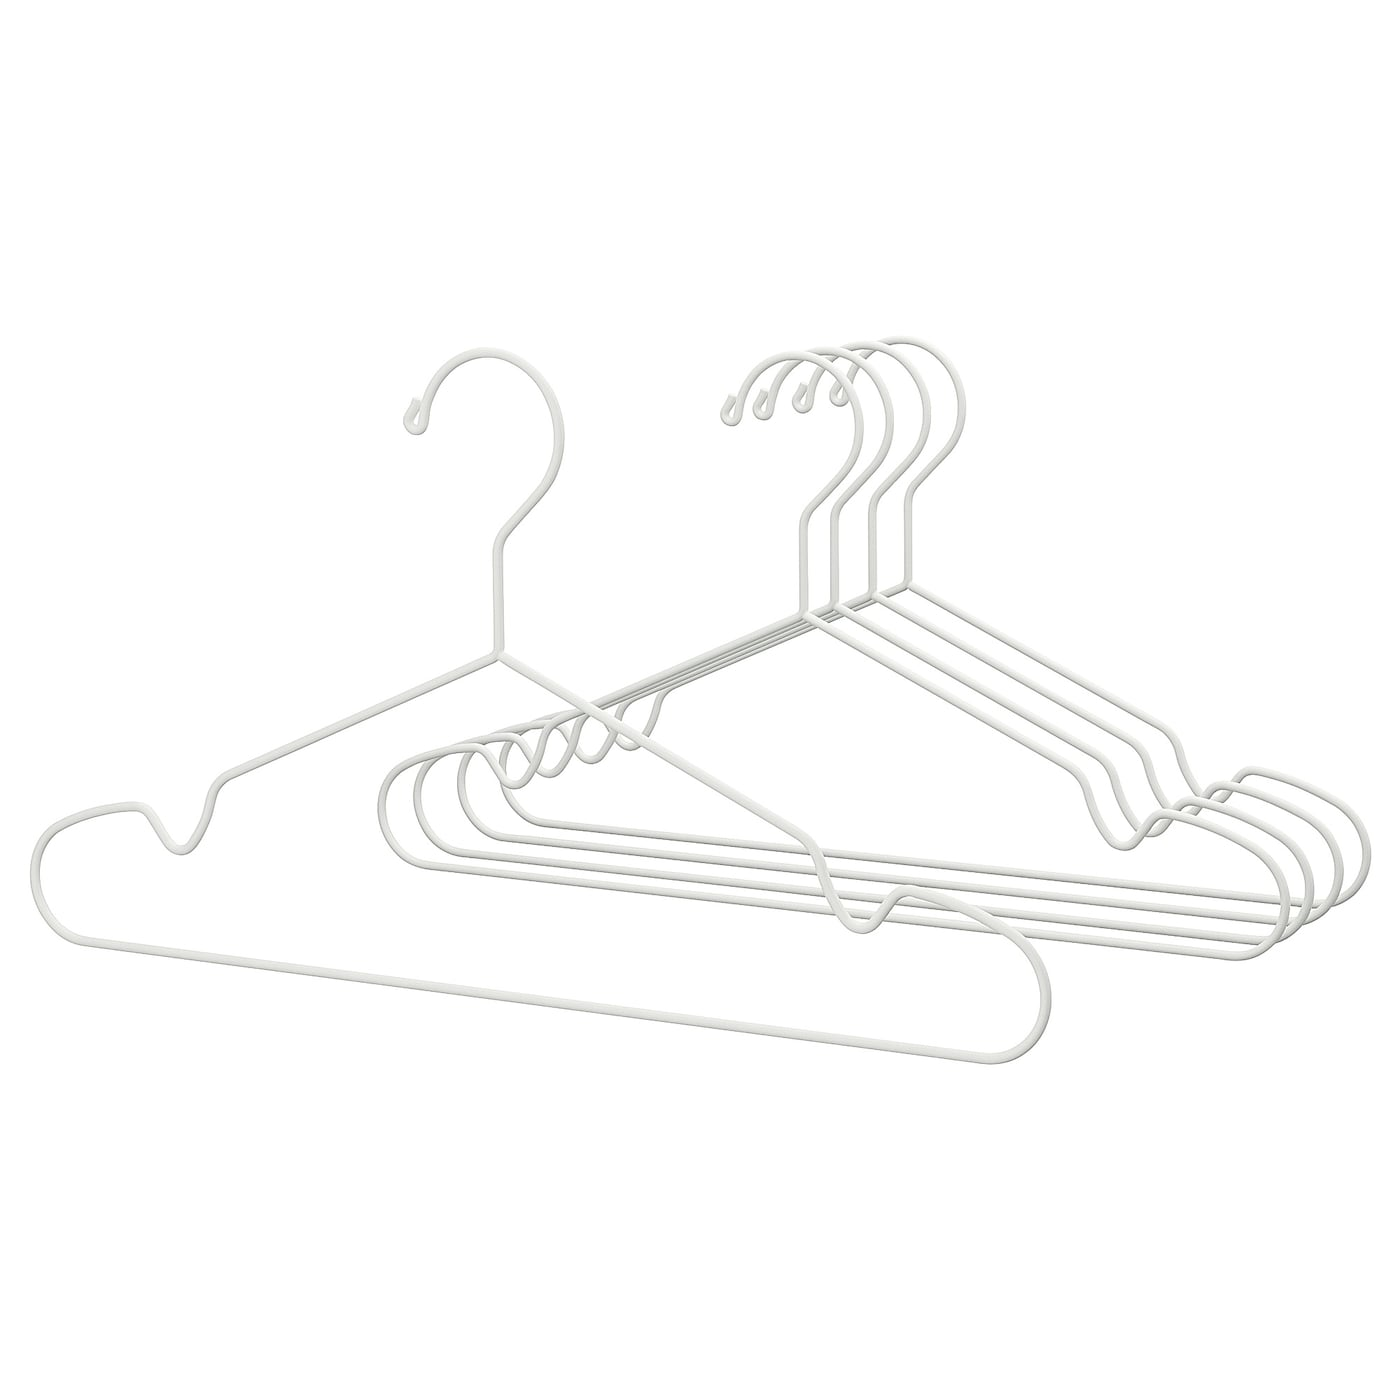 IKEA STAJLIG hanger, in/outdoor